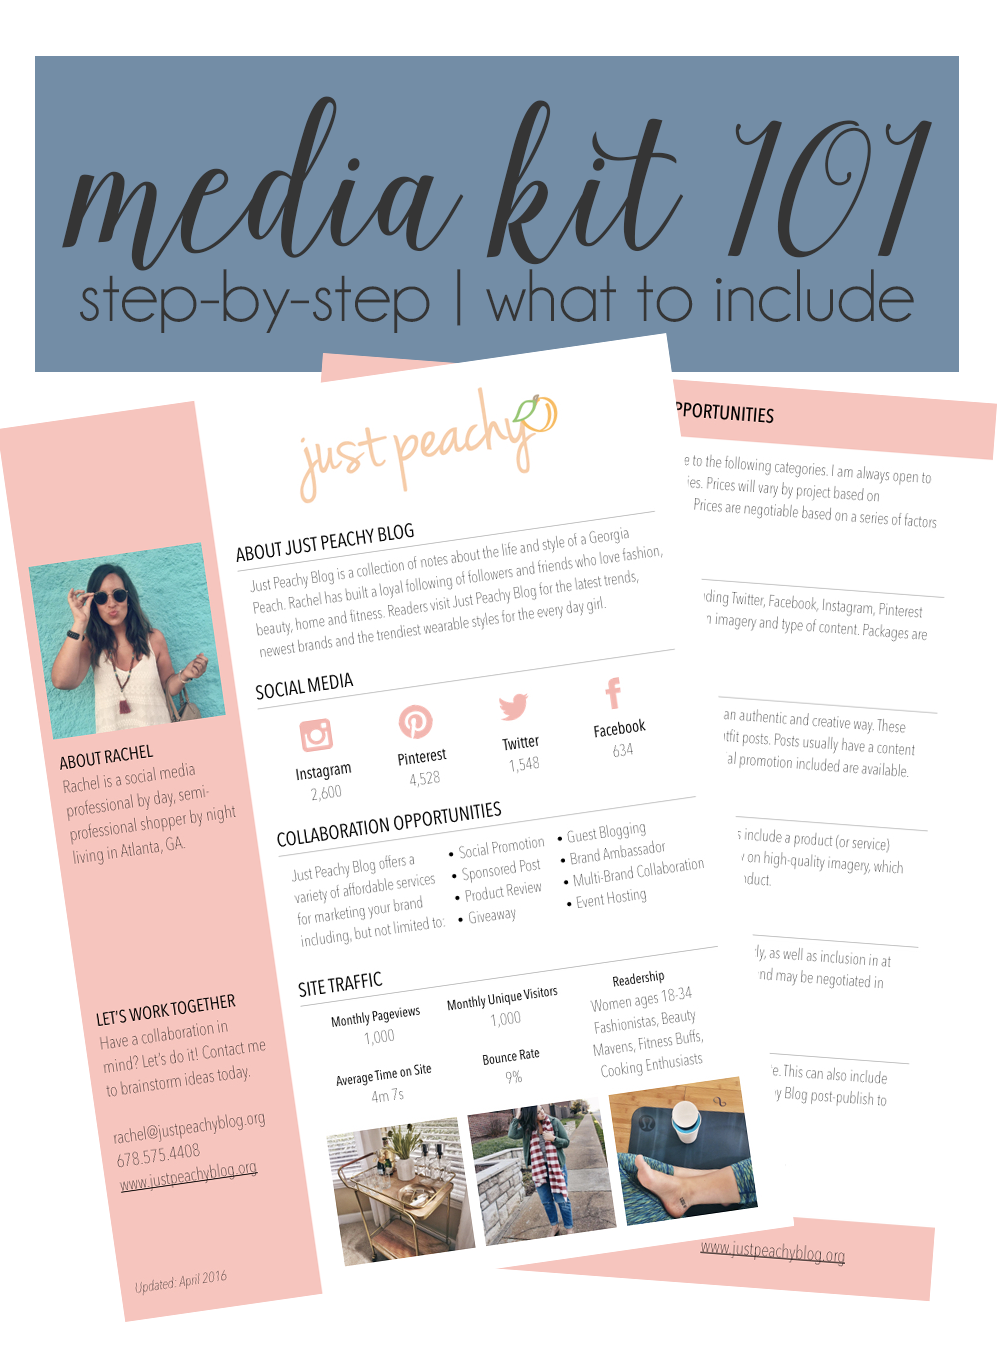 advertising media kit template - blog tips media kit just peachy blog